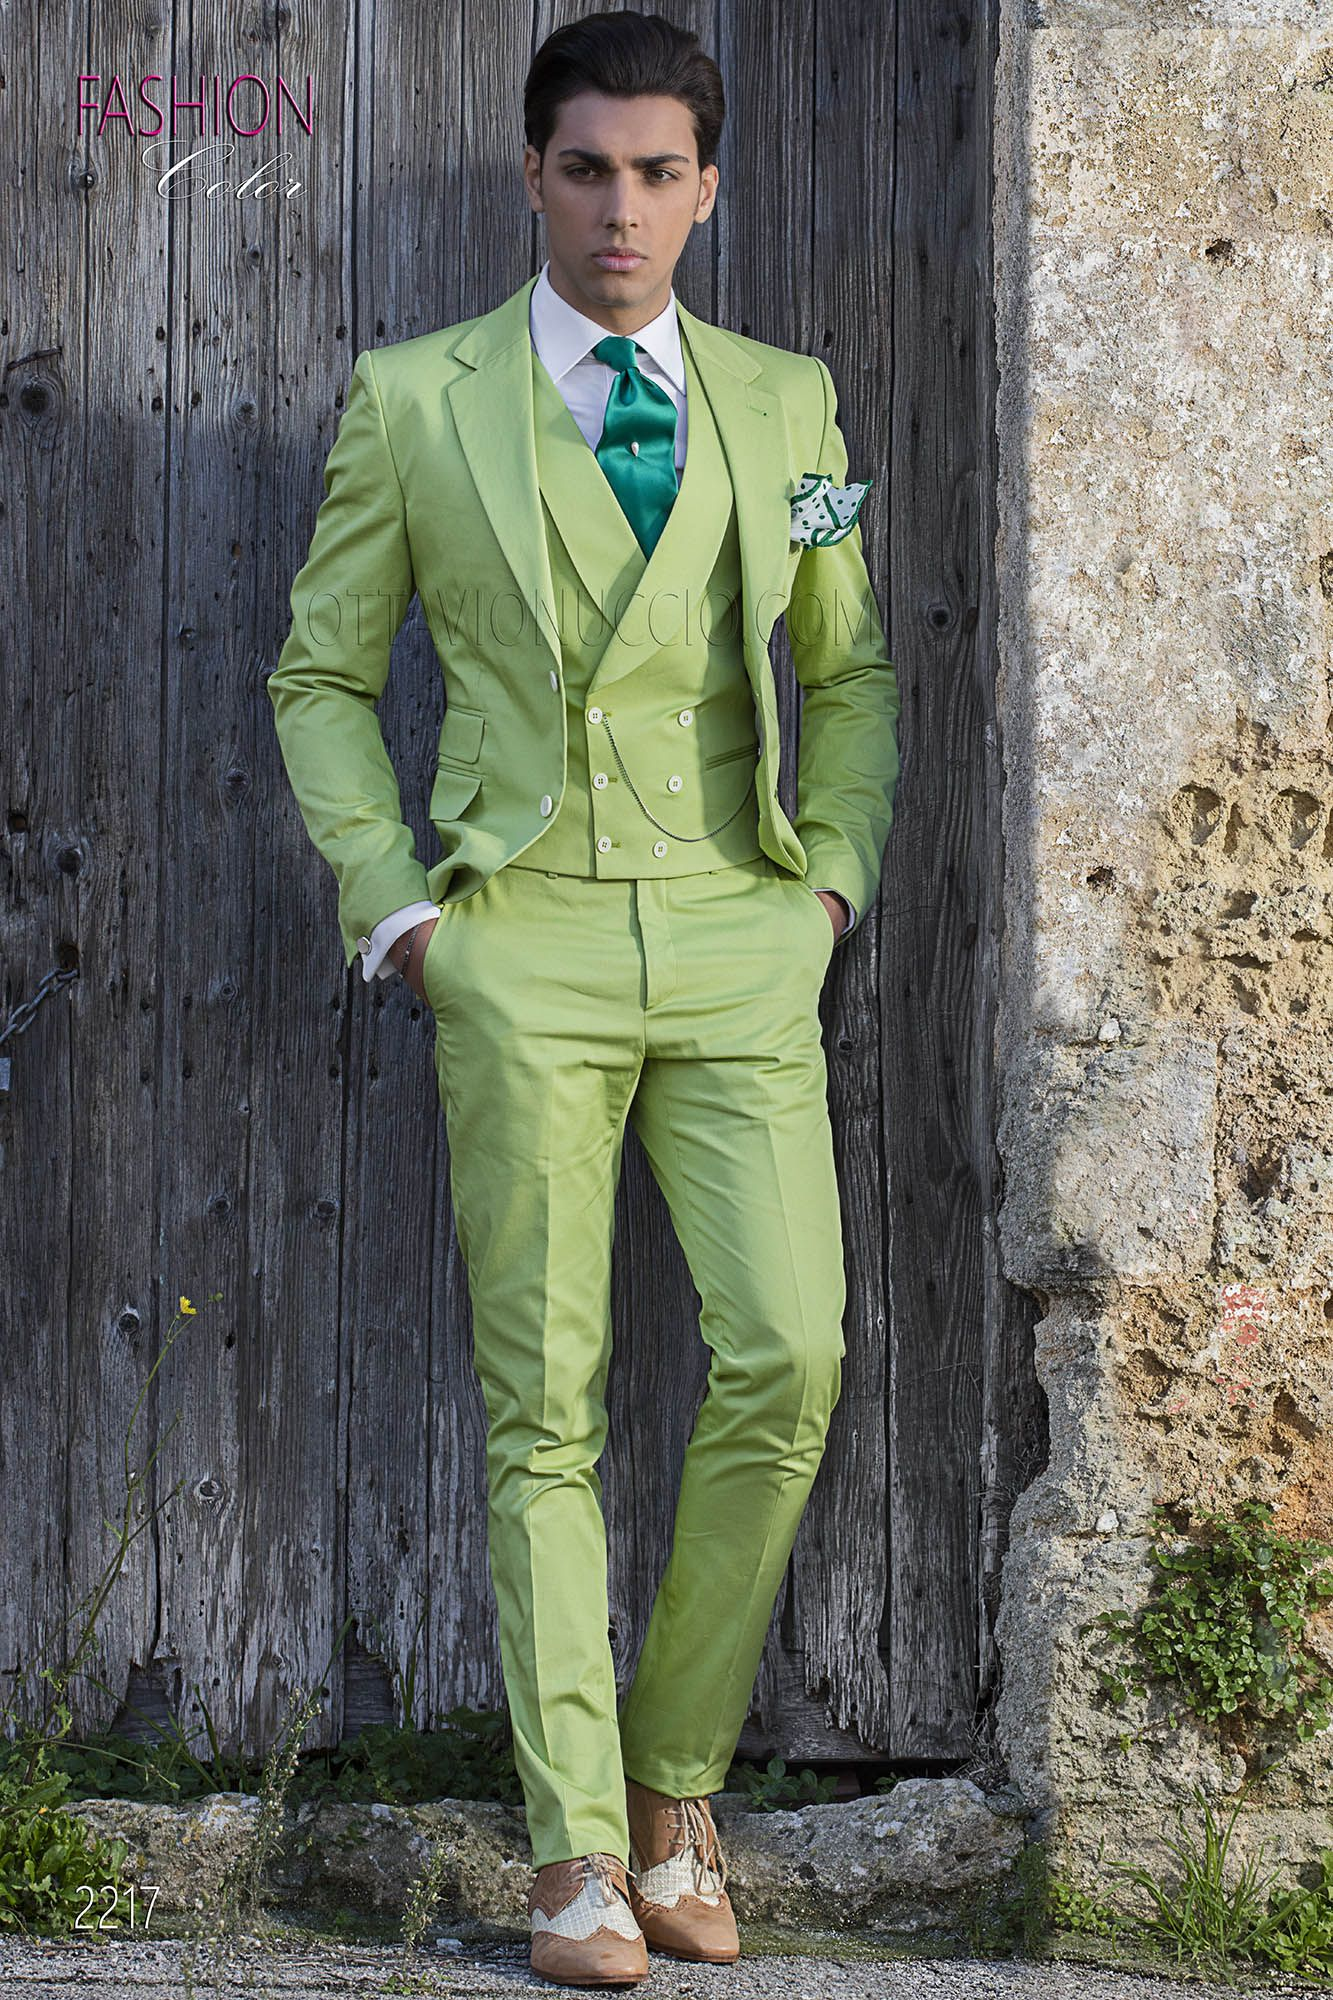 f1bfcbf2fdb94 Italian bespoke wedding summer suit in green cotton. Suit ONGala 2217